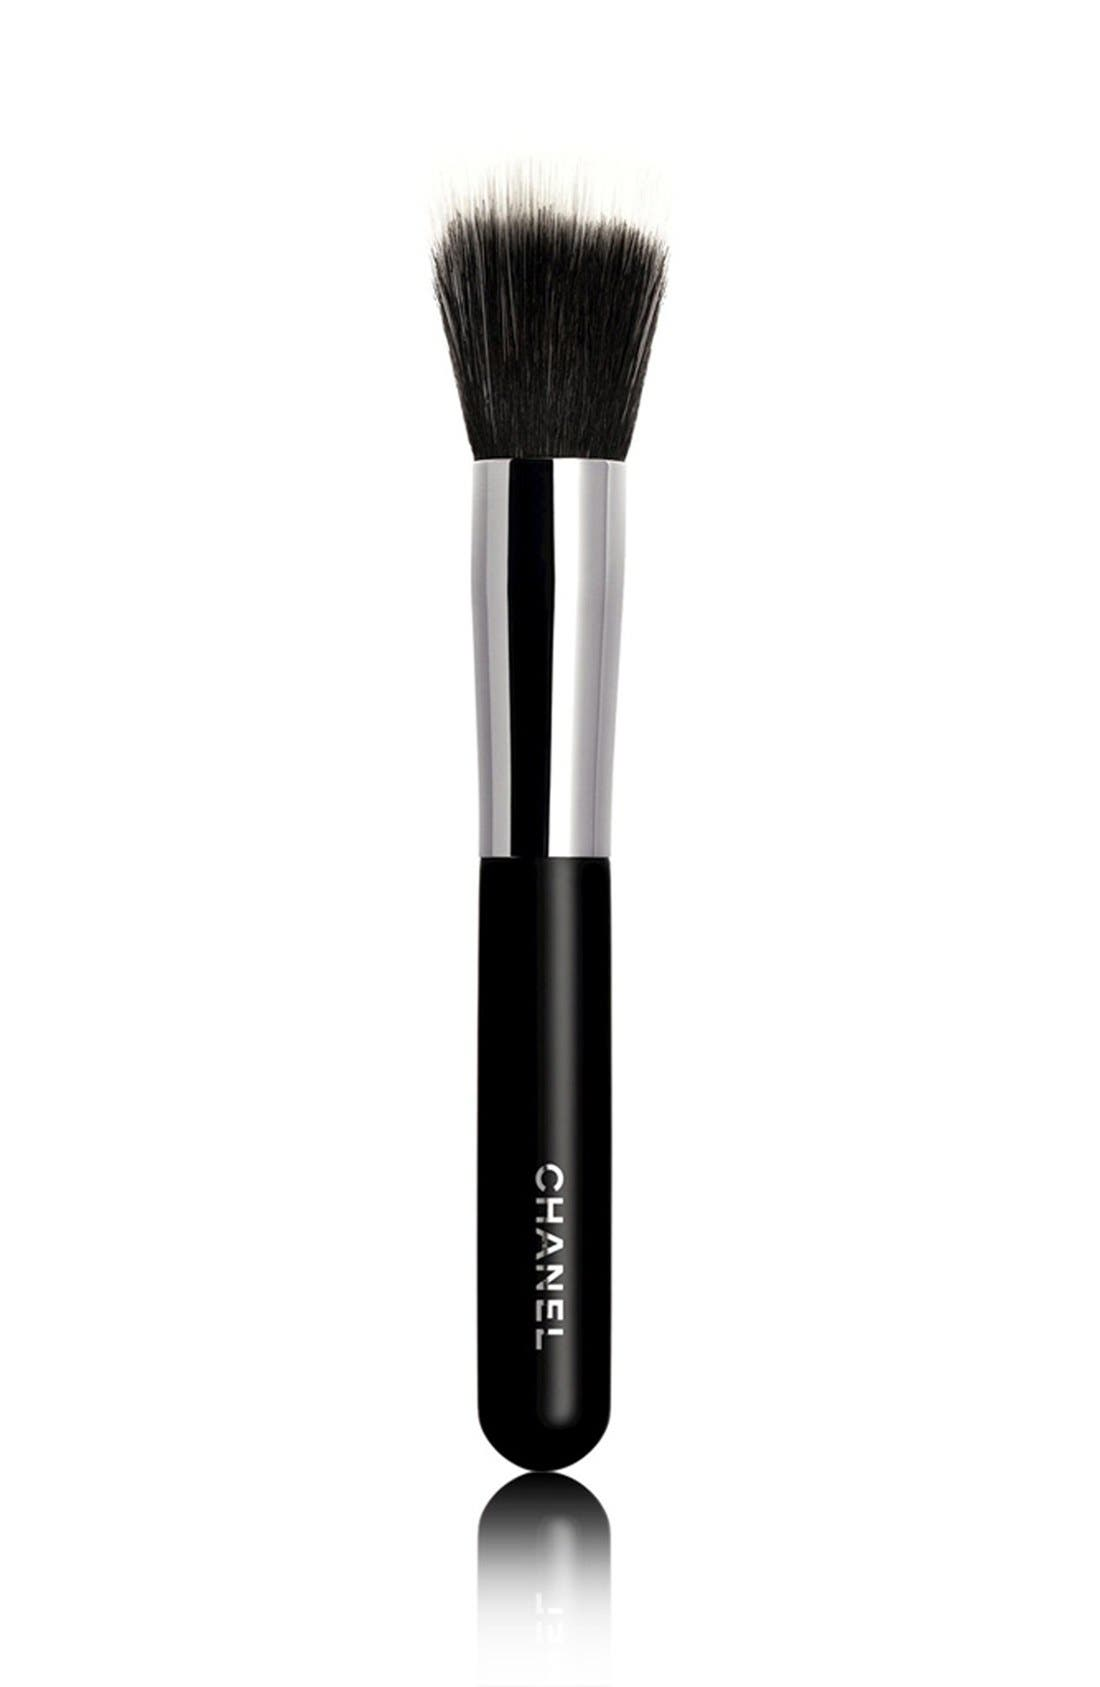 PINCEAU FOND DE TEINT ESTOMPE<br />Blending Foundation Brush #7,                             Main thumbnail 1, color,                             000